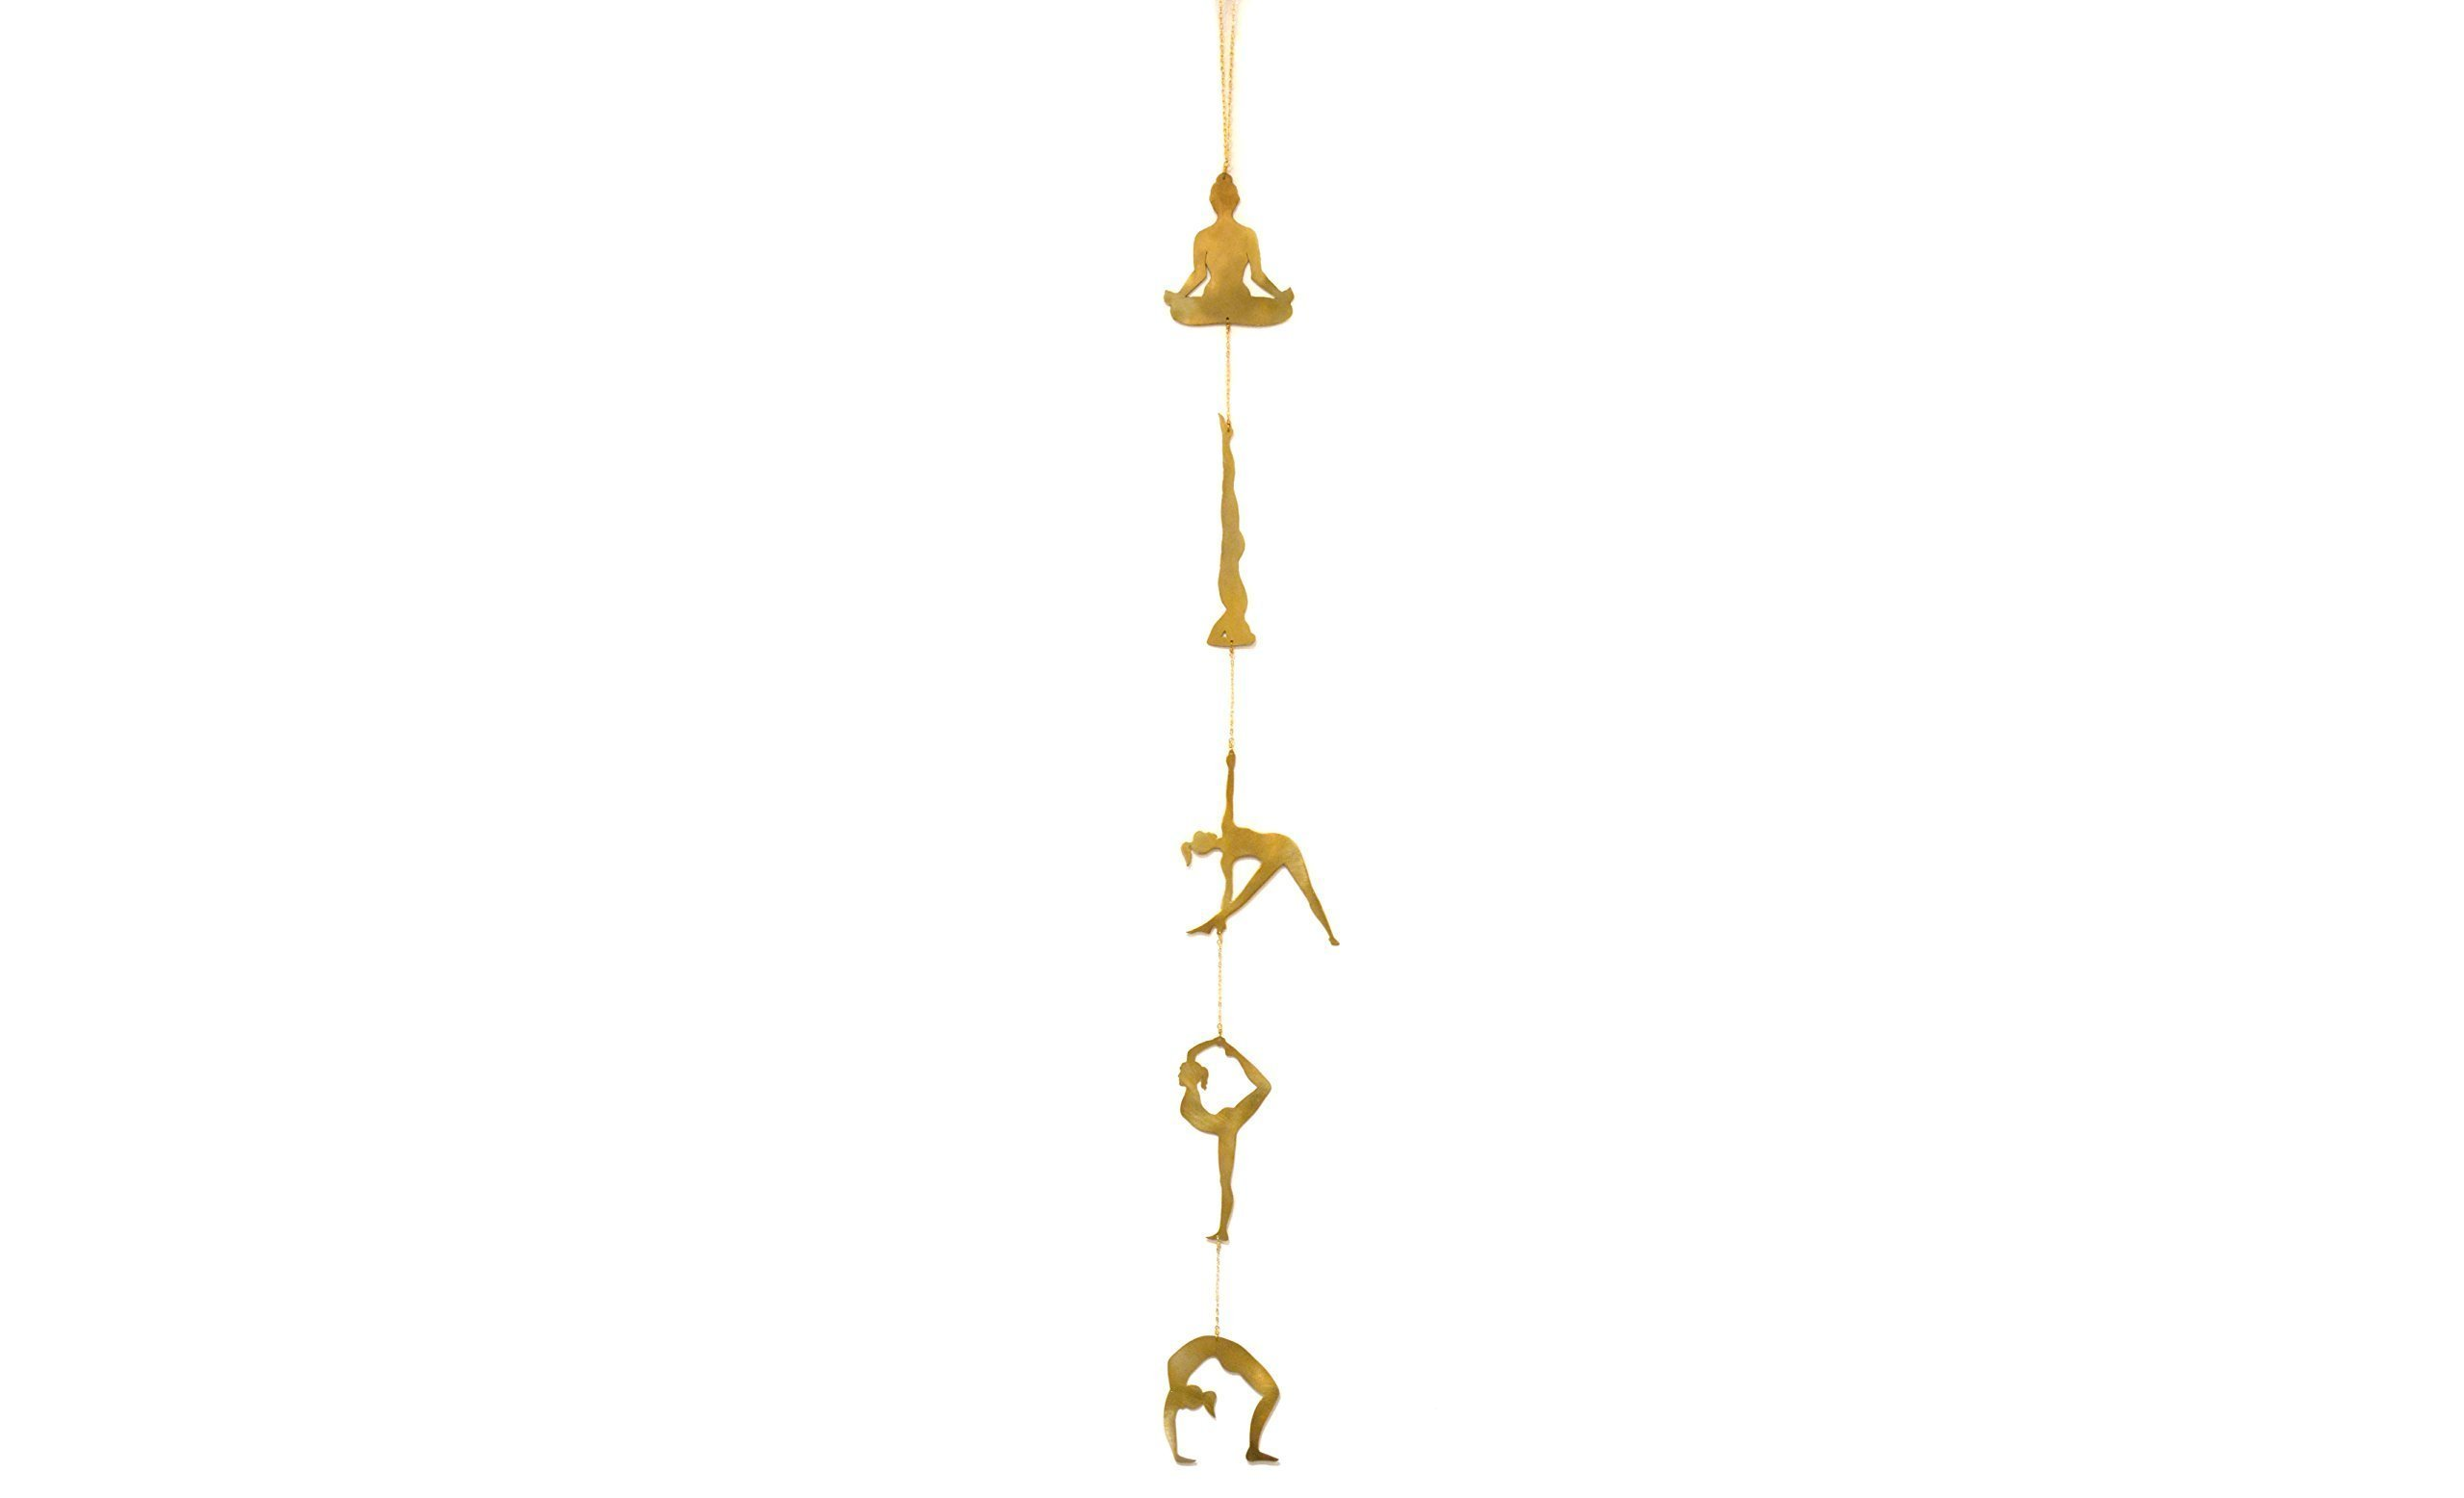 Yoga Meditation Decor by Ariana Ost | Handcrafted Yoga Studio Decorations for Yoga Theme and Inspired Spaces | Beautiful in Studio, Office, Home, Garden | Brass Yoga Poses | 39 Inches by Ariana Ost